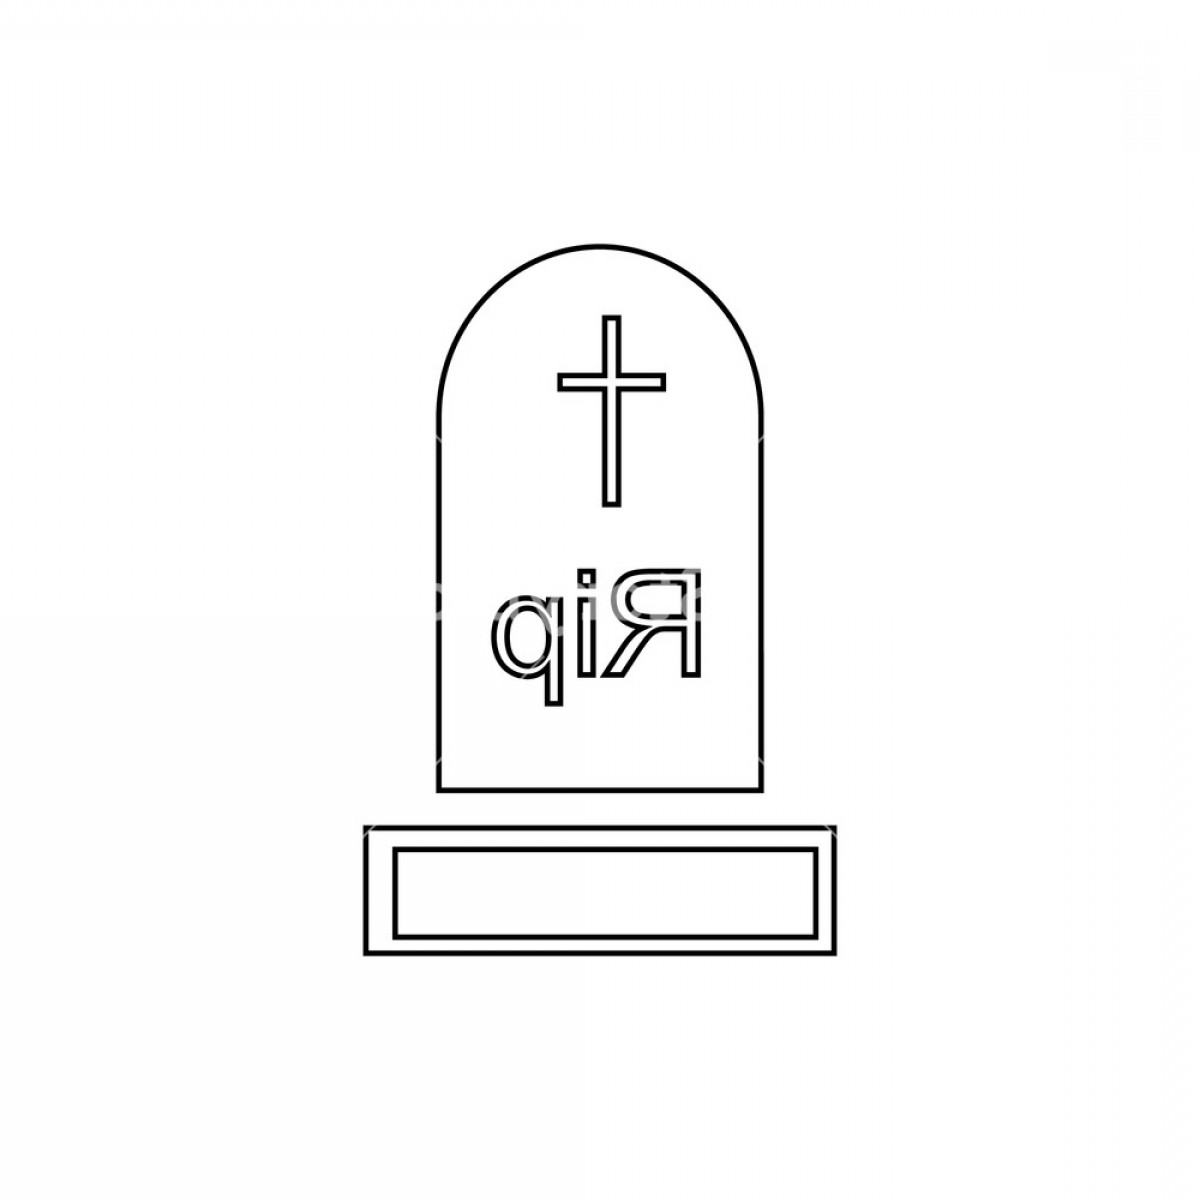 Gravestone Outline Vector: Gravestone Icon Outline Illustration Of Gravestone Vector Icon For Web Design Hgevk Xyjhjmqfs